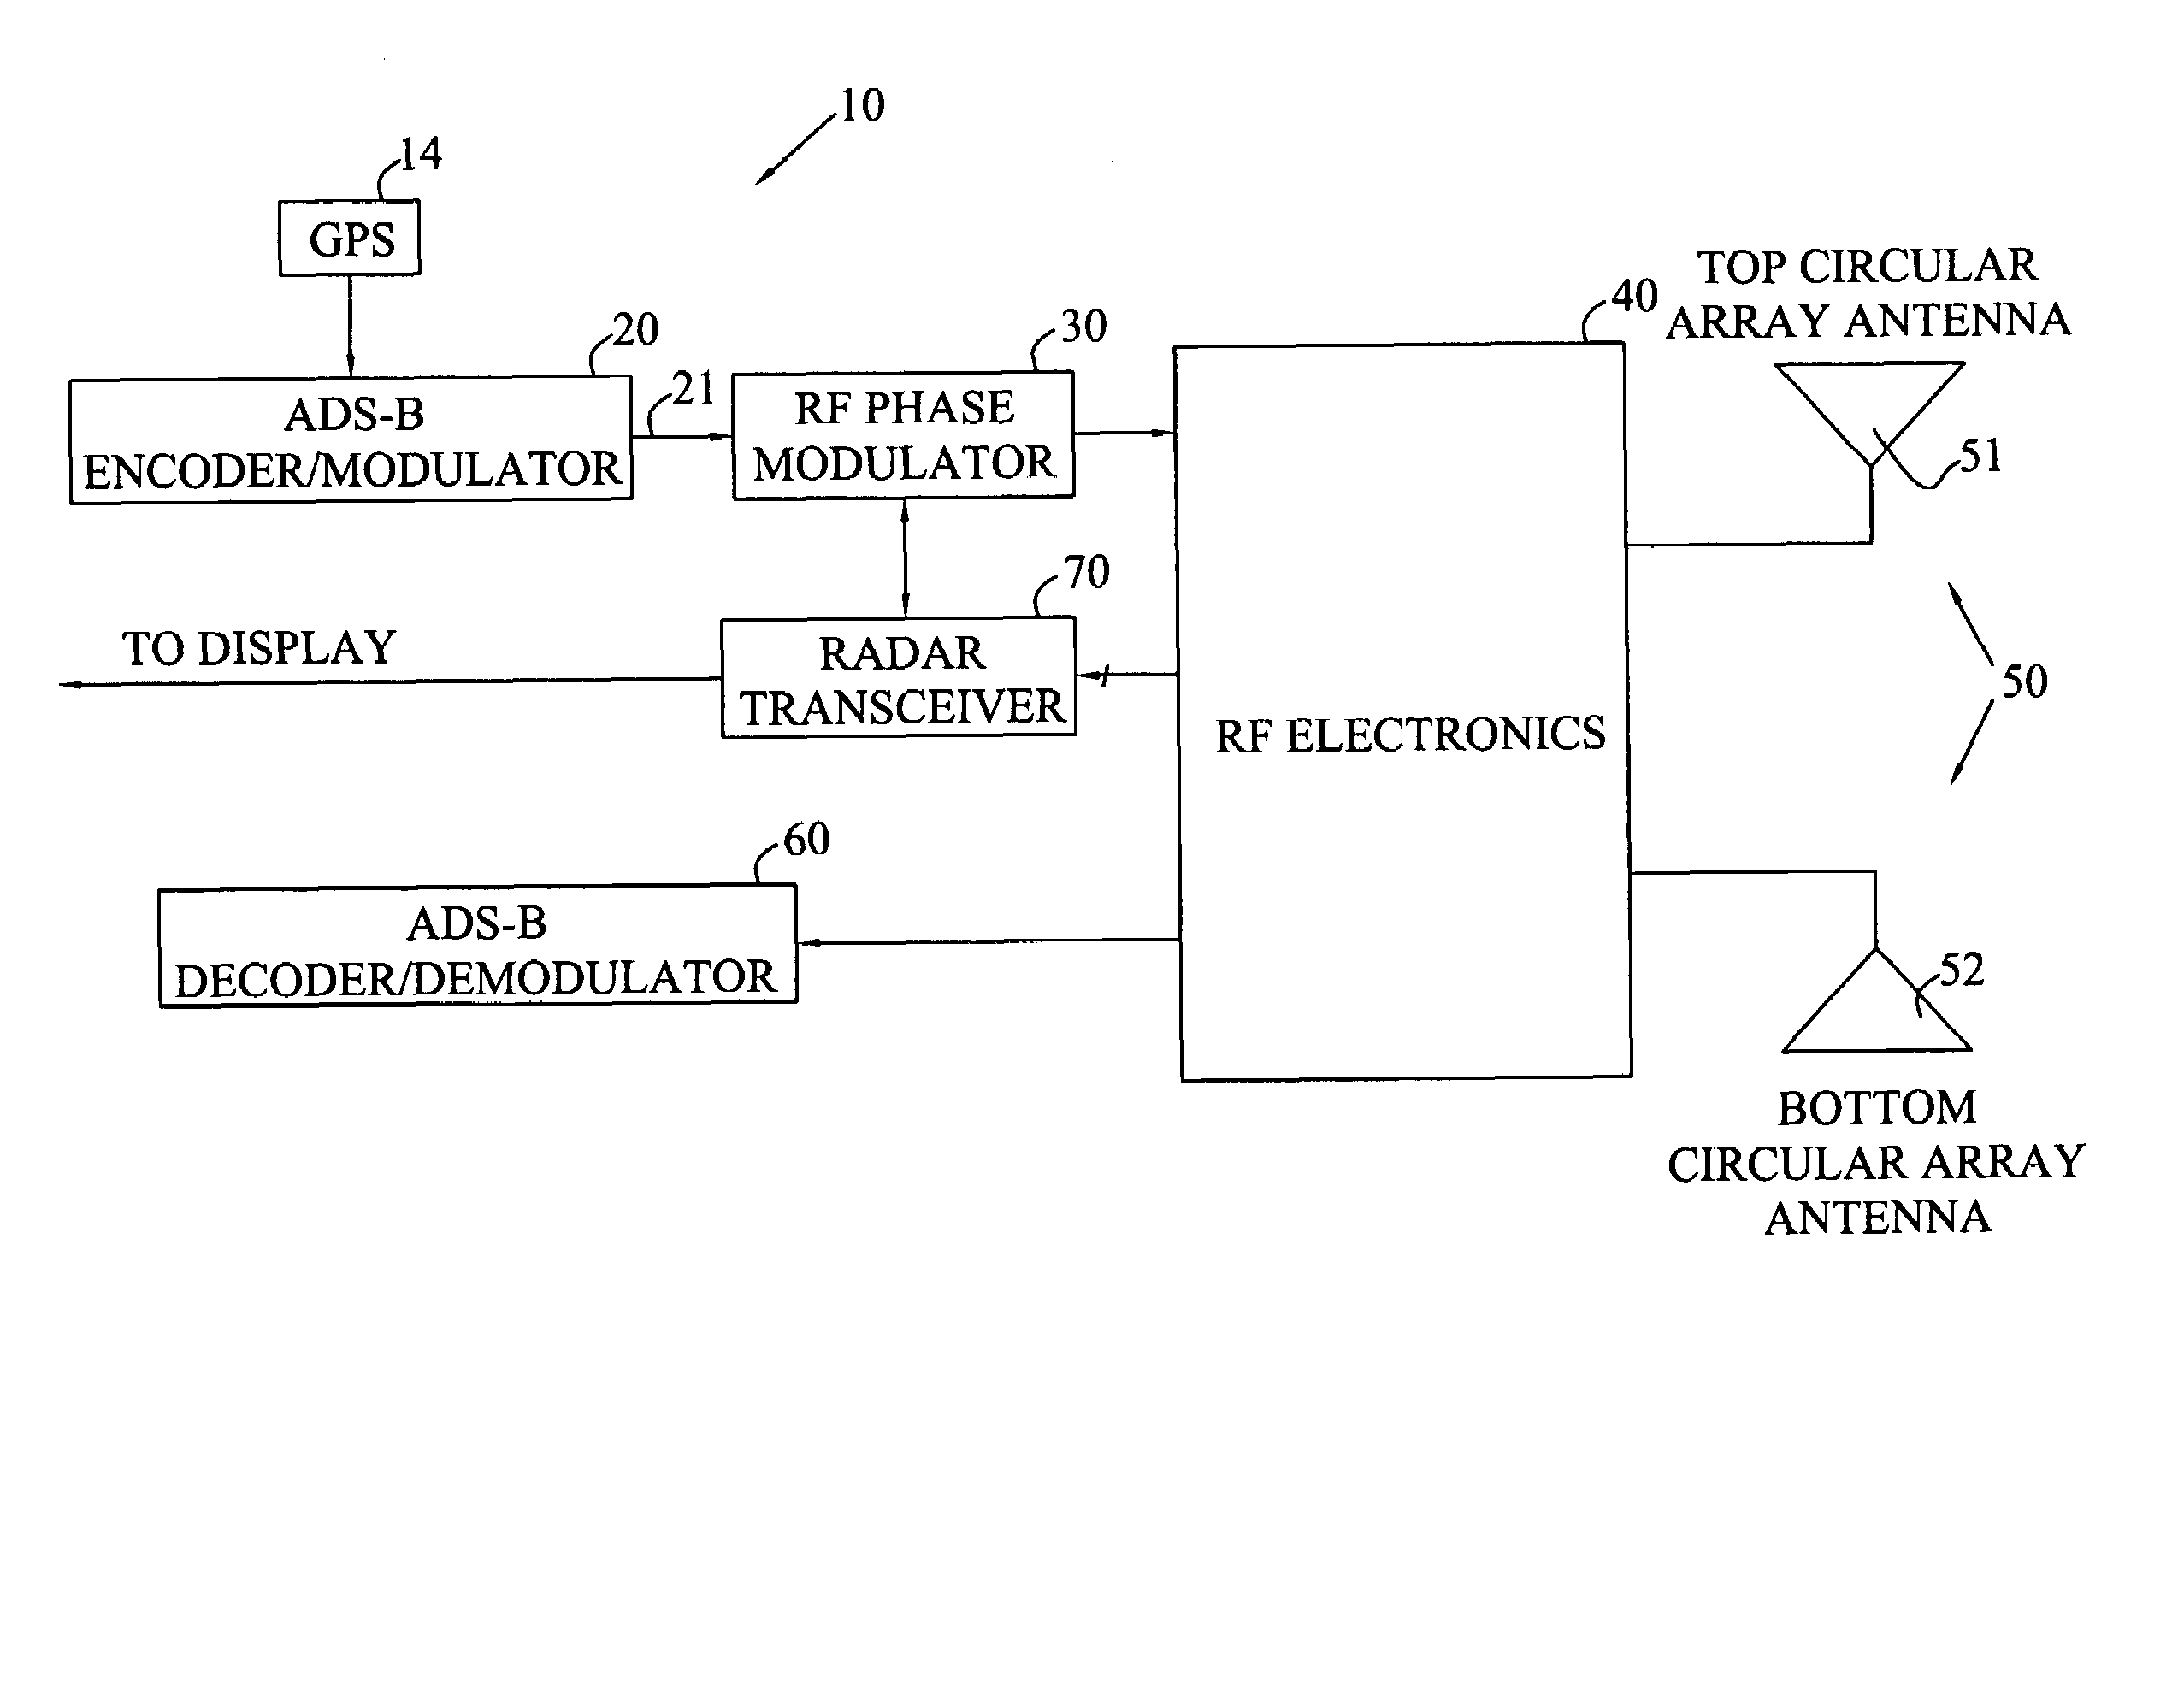 Analytics For Us Patent No 7414567 Ads B Radar System Mode S Transponder Block Diagram Number Of Patents In Portfolio Can Not Be More Than 2000